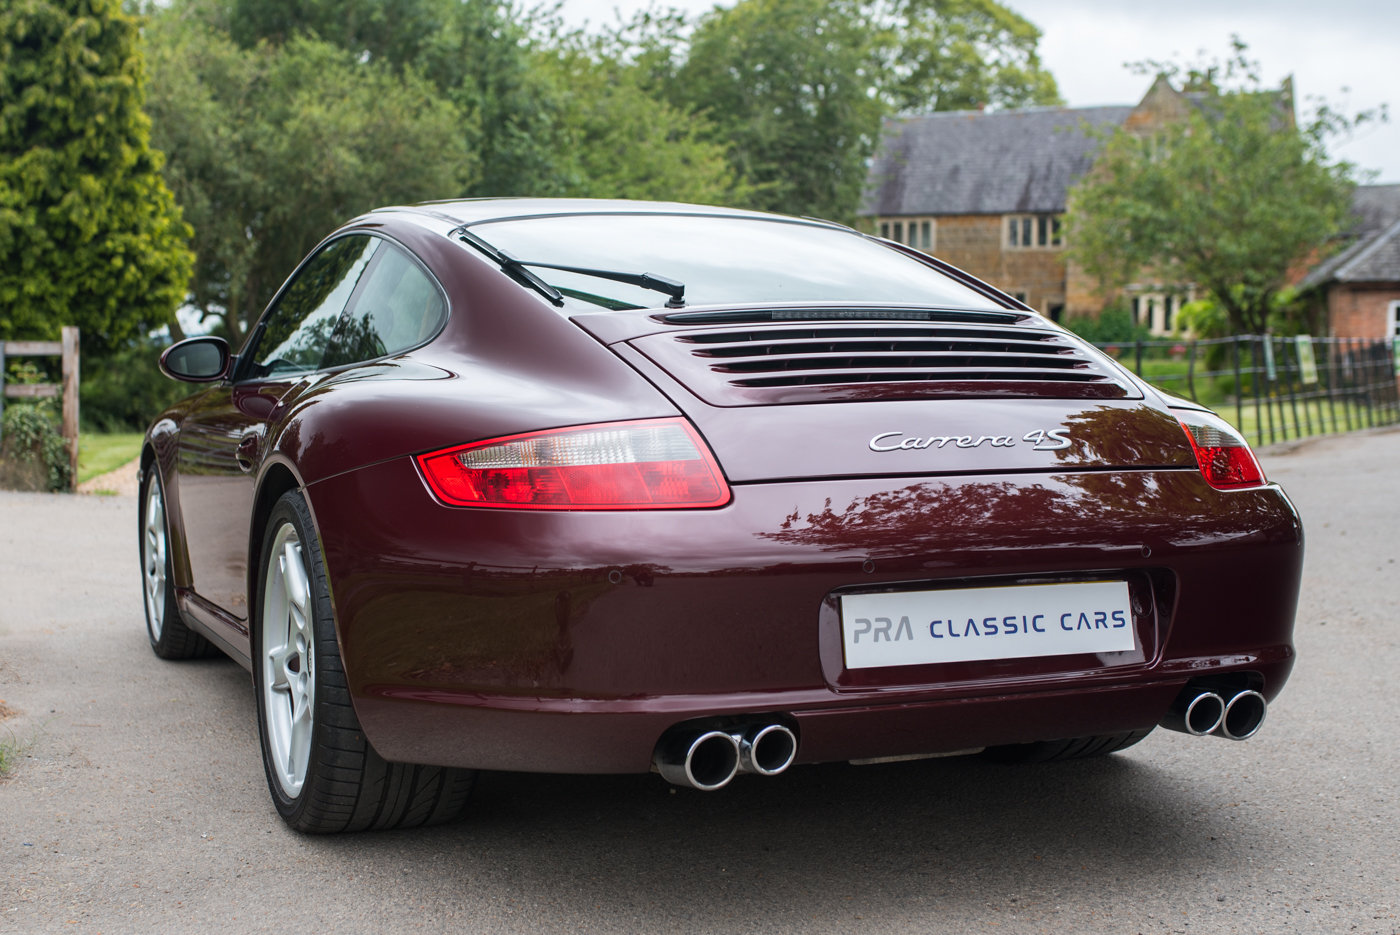 2006 PORSCHE 997 C4S 6 SPEED MANUAL SOLD (picture 3 of 6)